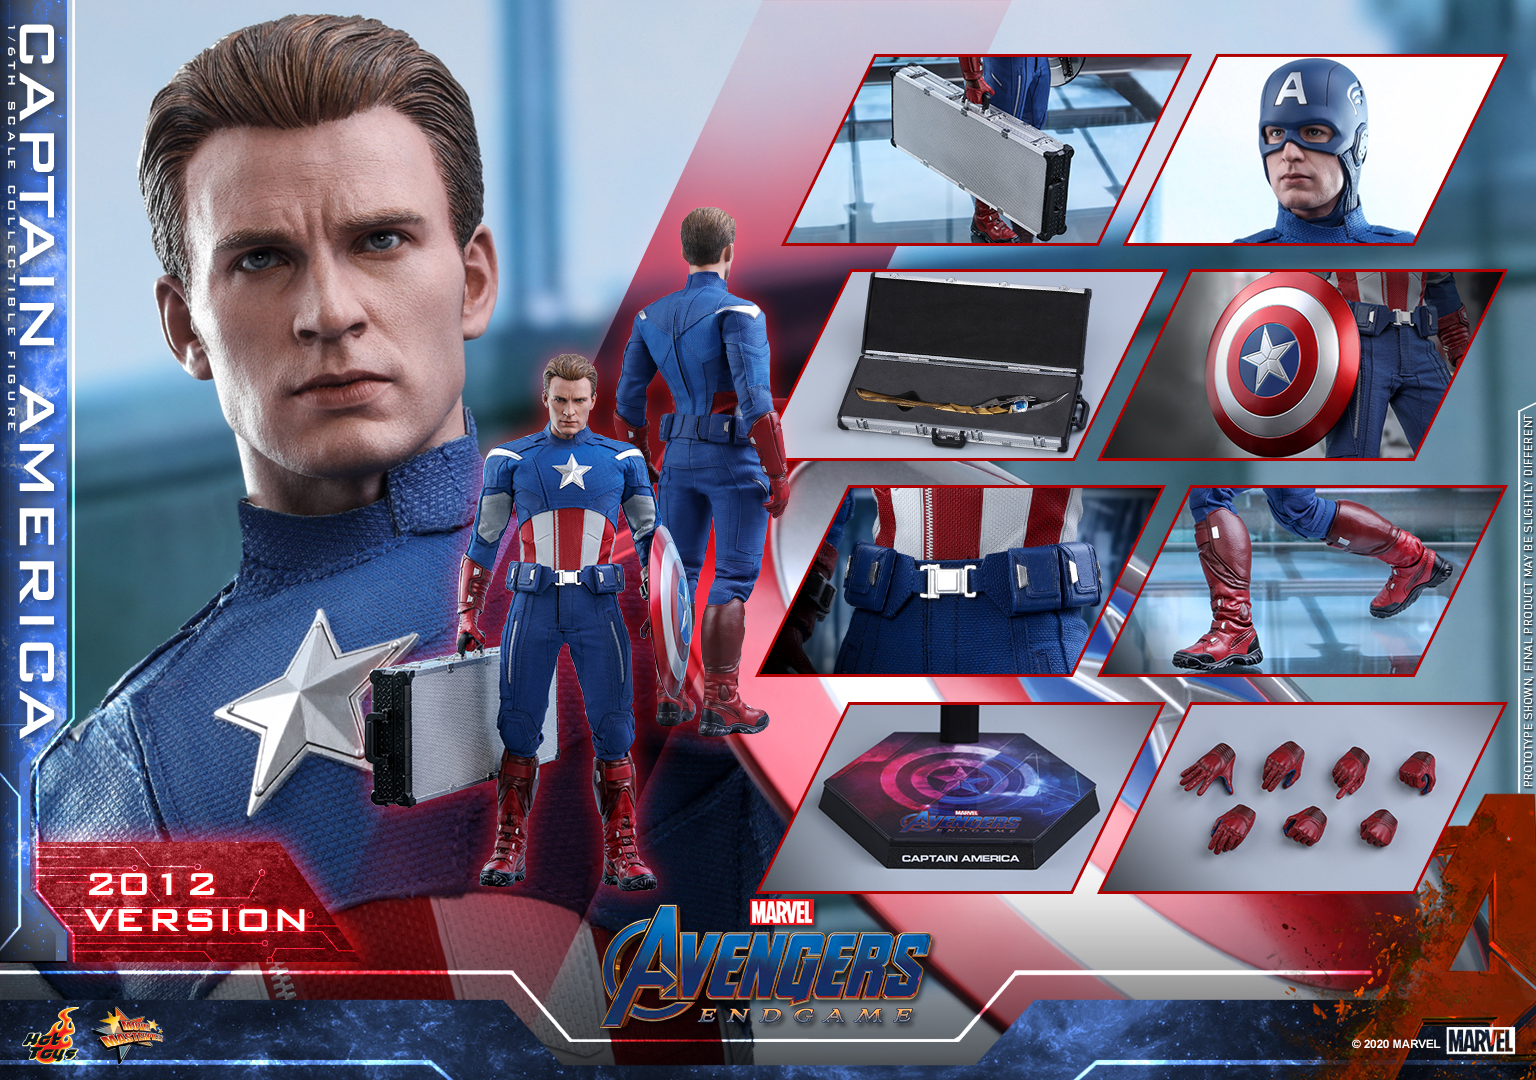 Hot Toys - A4 - Captain America (2012 Version) Collectible Figure_PR23